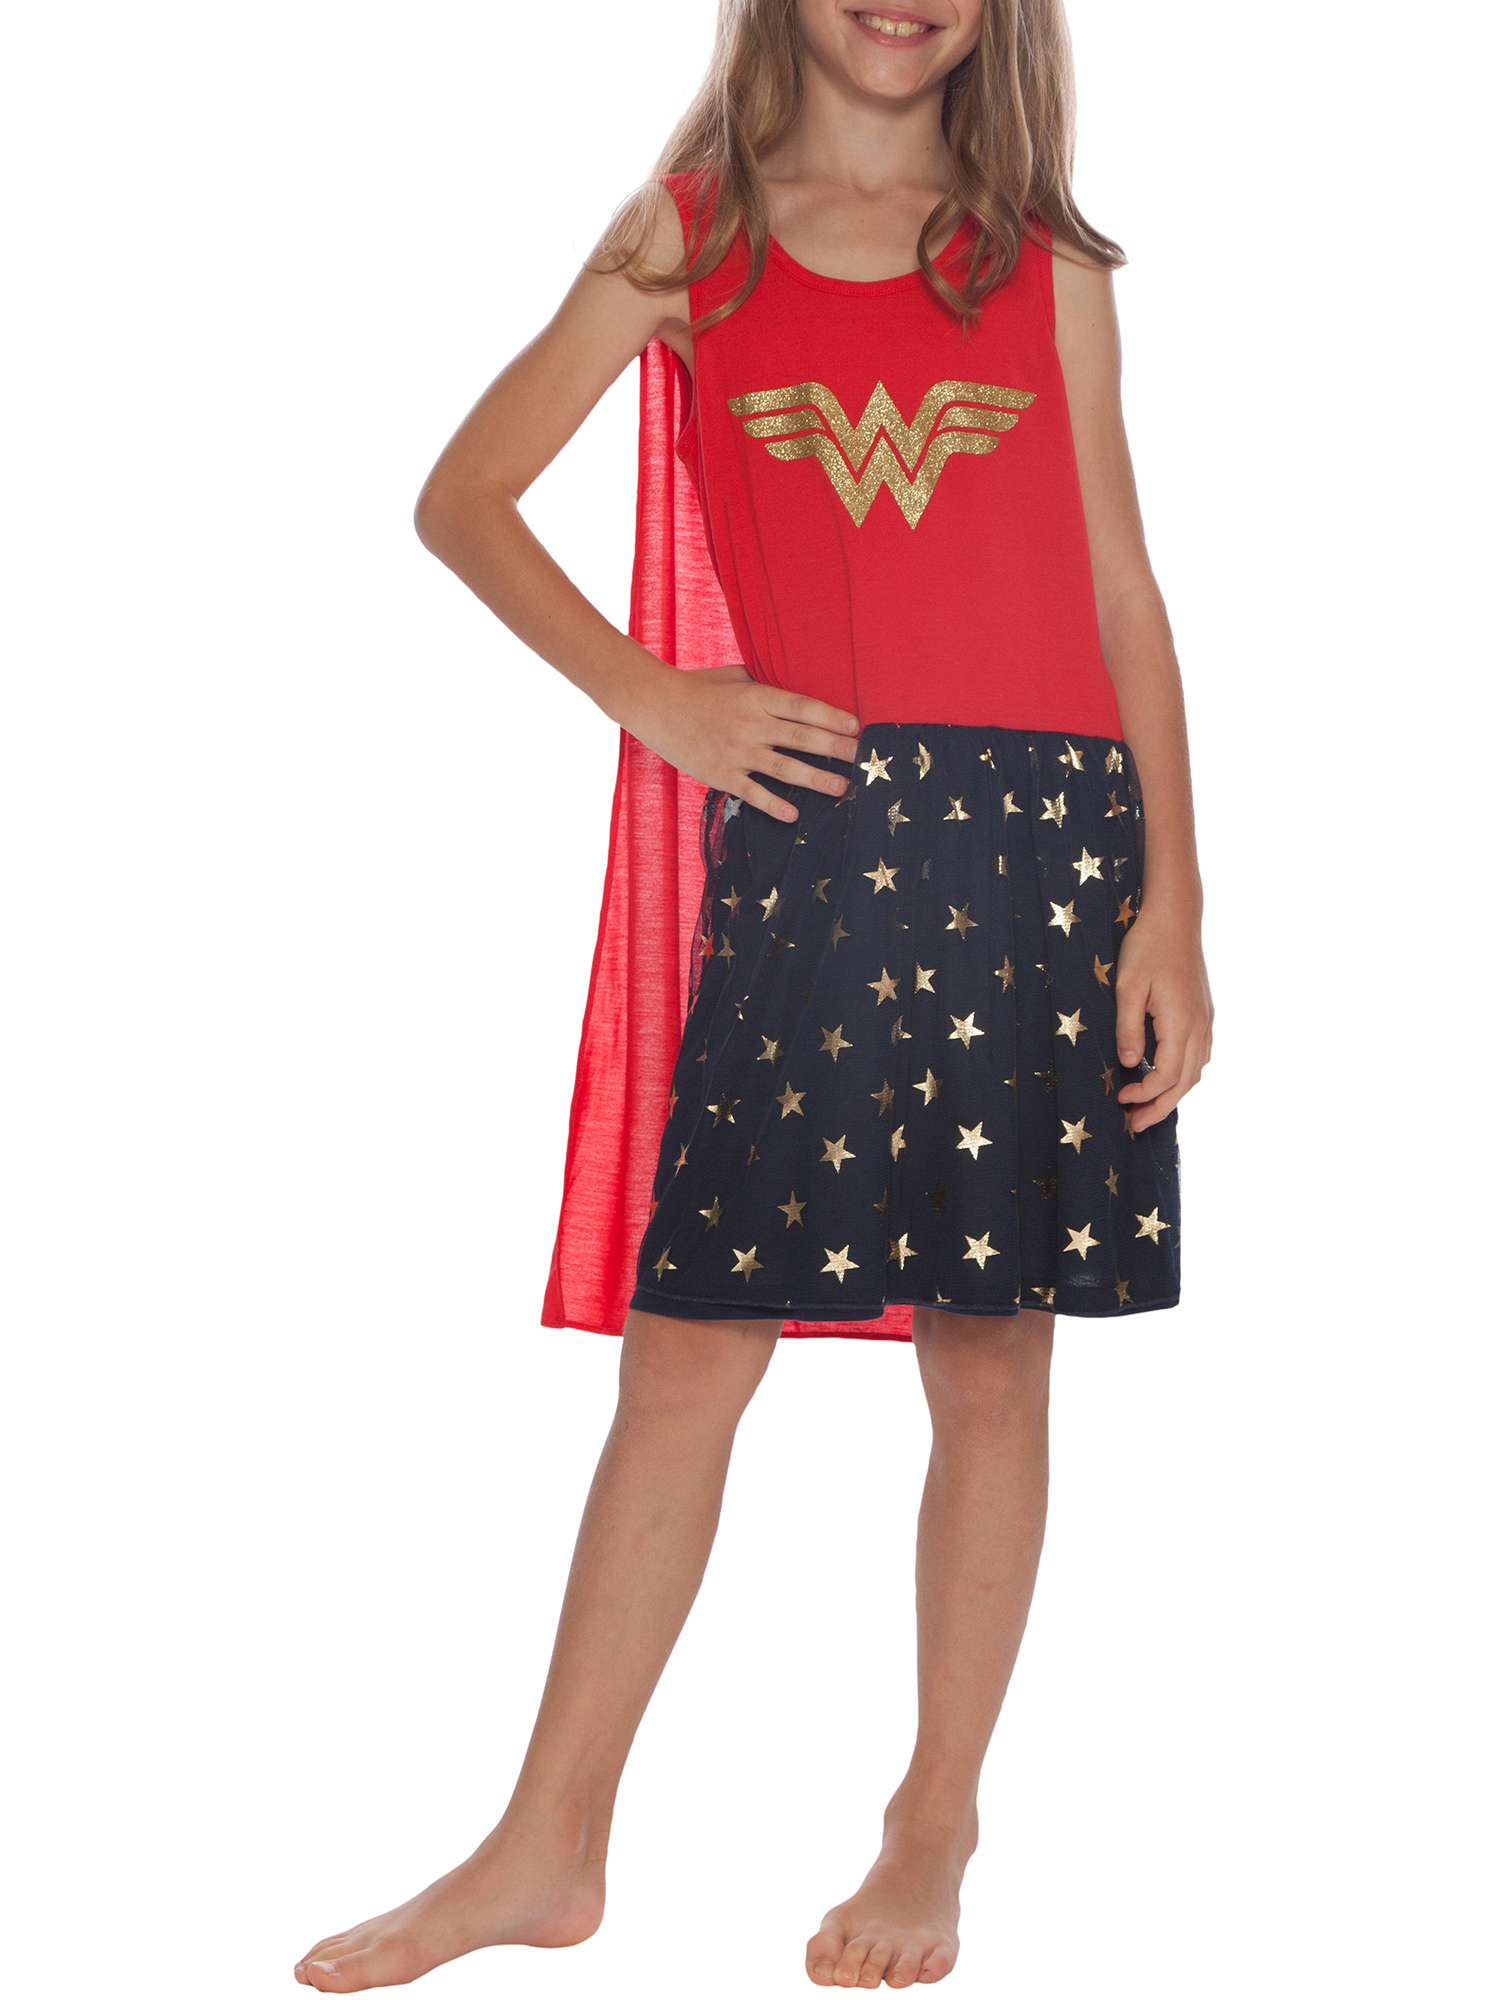 Girls Tank Top Nightgown with Cape